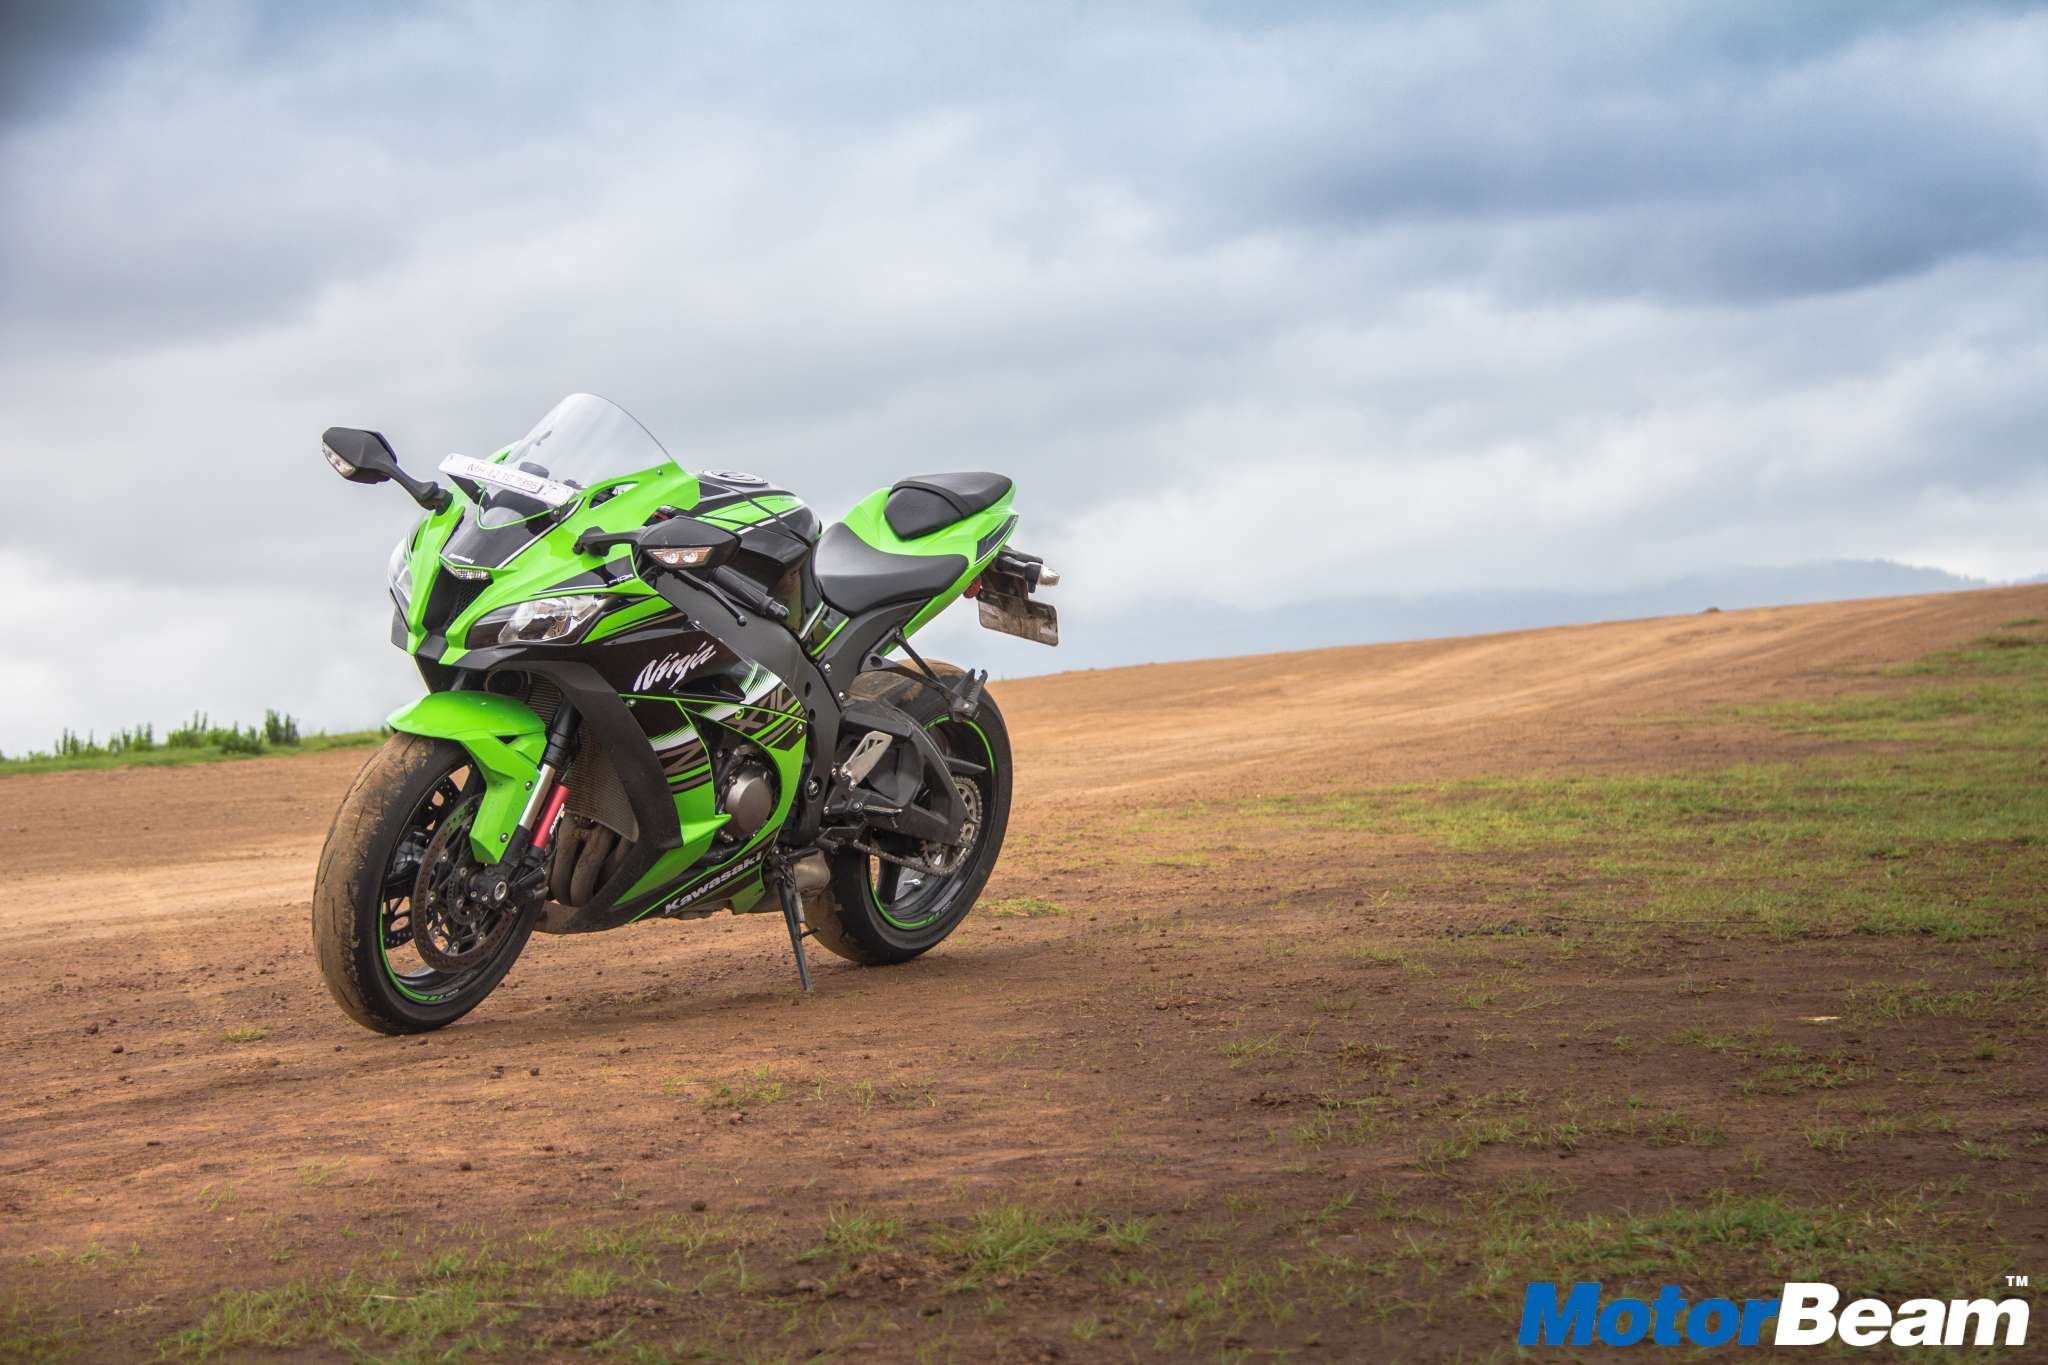 2016 Kawasaki NInja ZX-10R Review